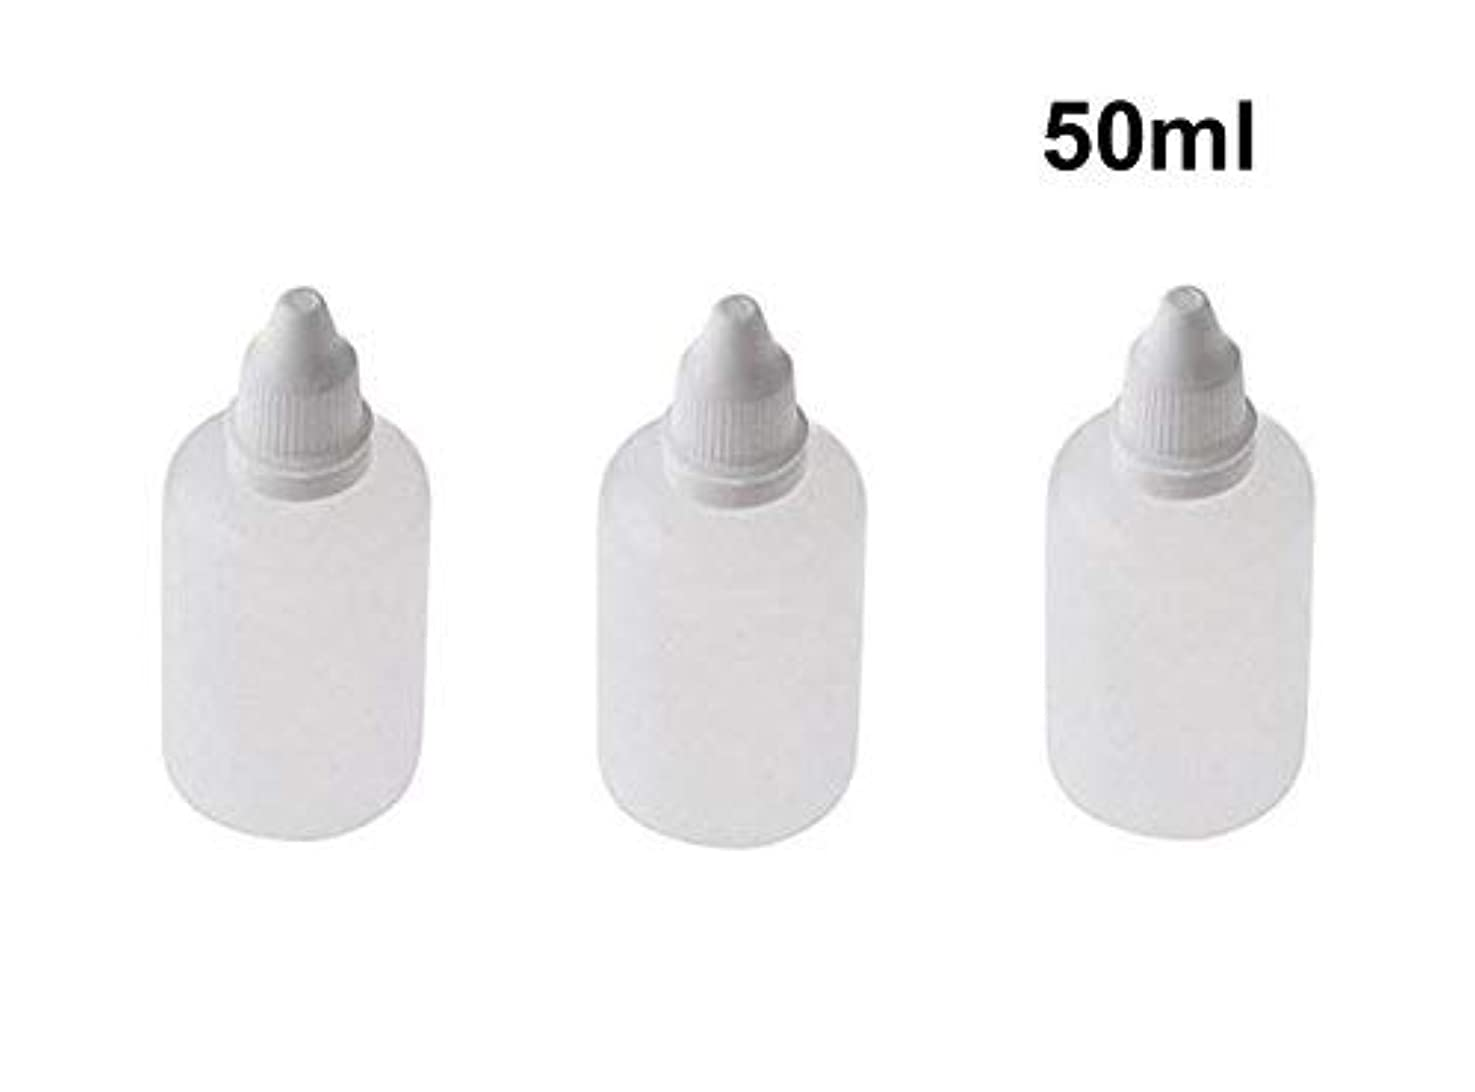 コウモリ増加するガロン10 Pieces Empty Refillable Plastic Squeezable Dropper Bottles Portable Eye Liquid Vial with Screw Caps and Plugs...